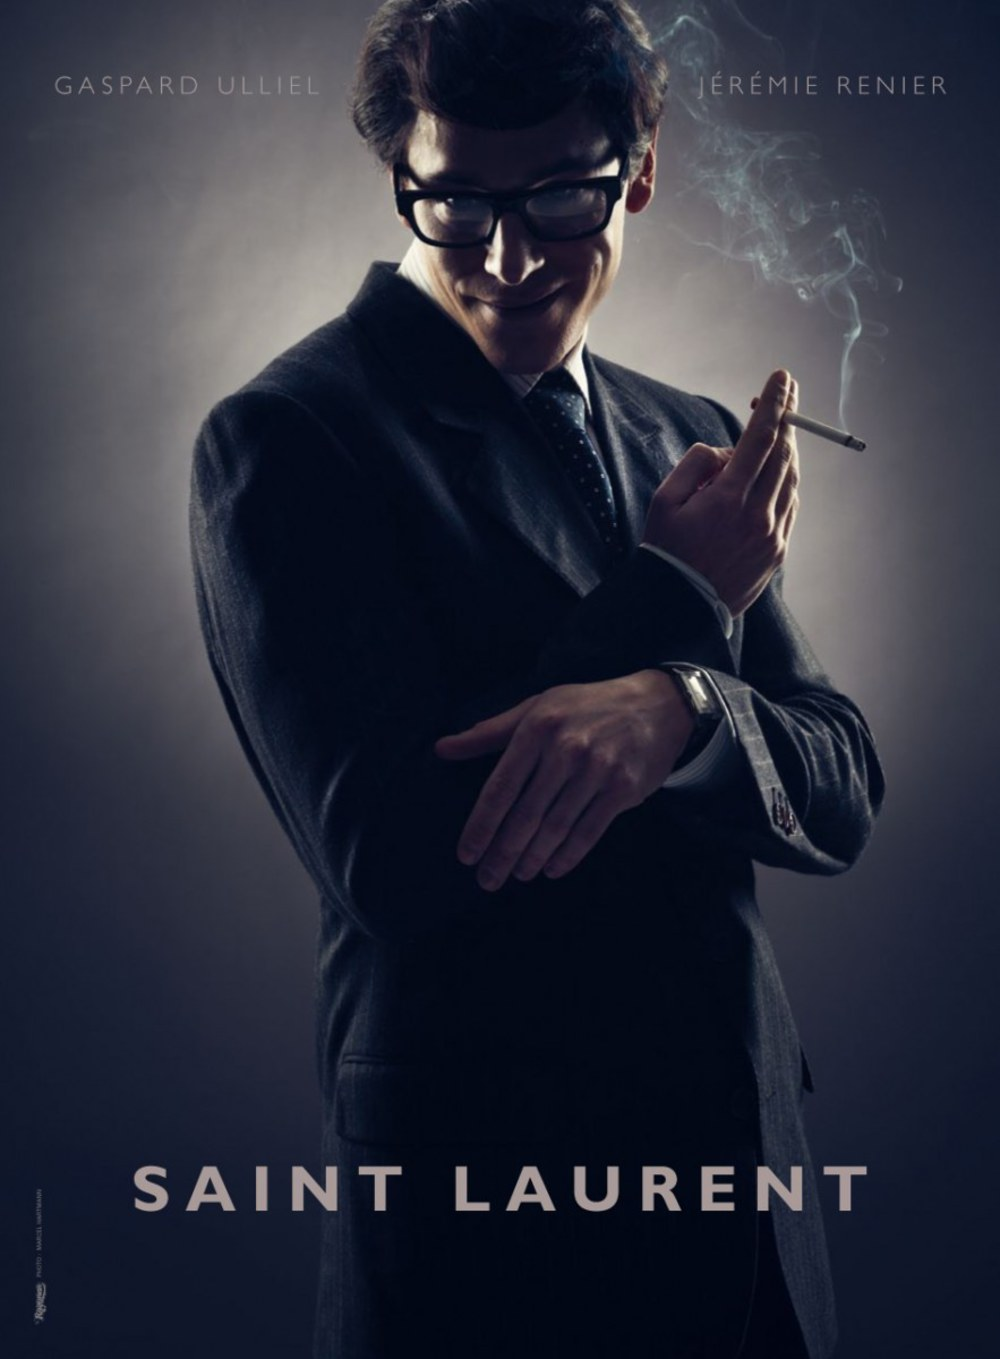 Mixed Response at Cannes for Saint Laurent Biopic